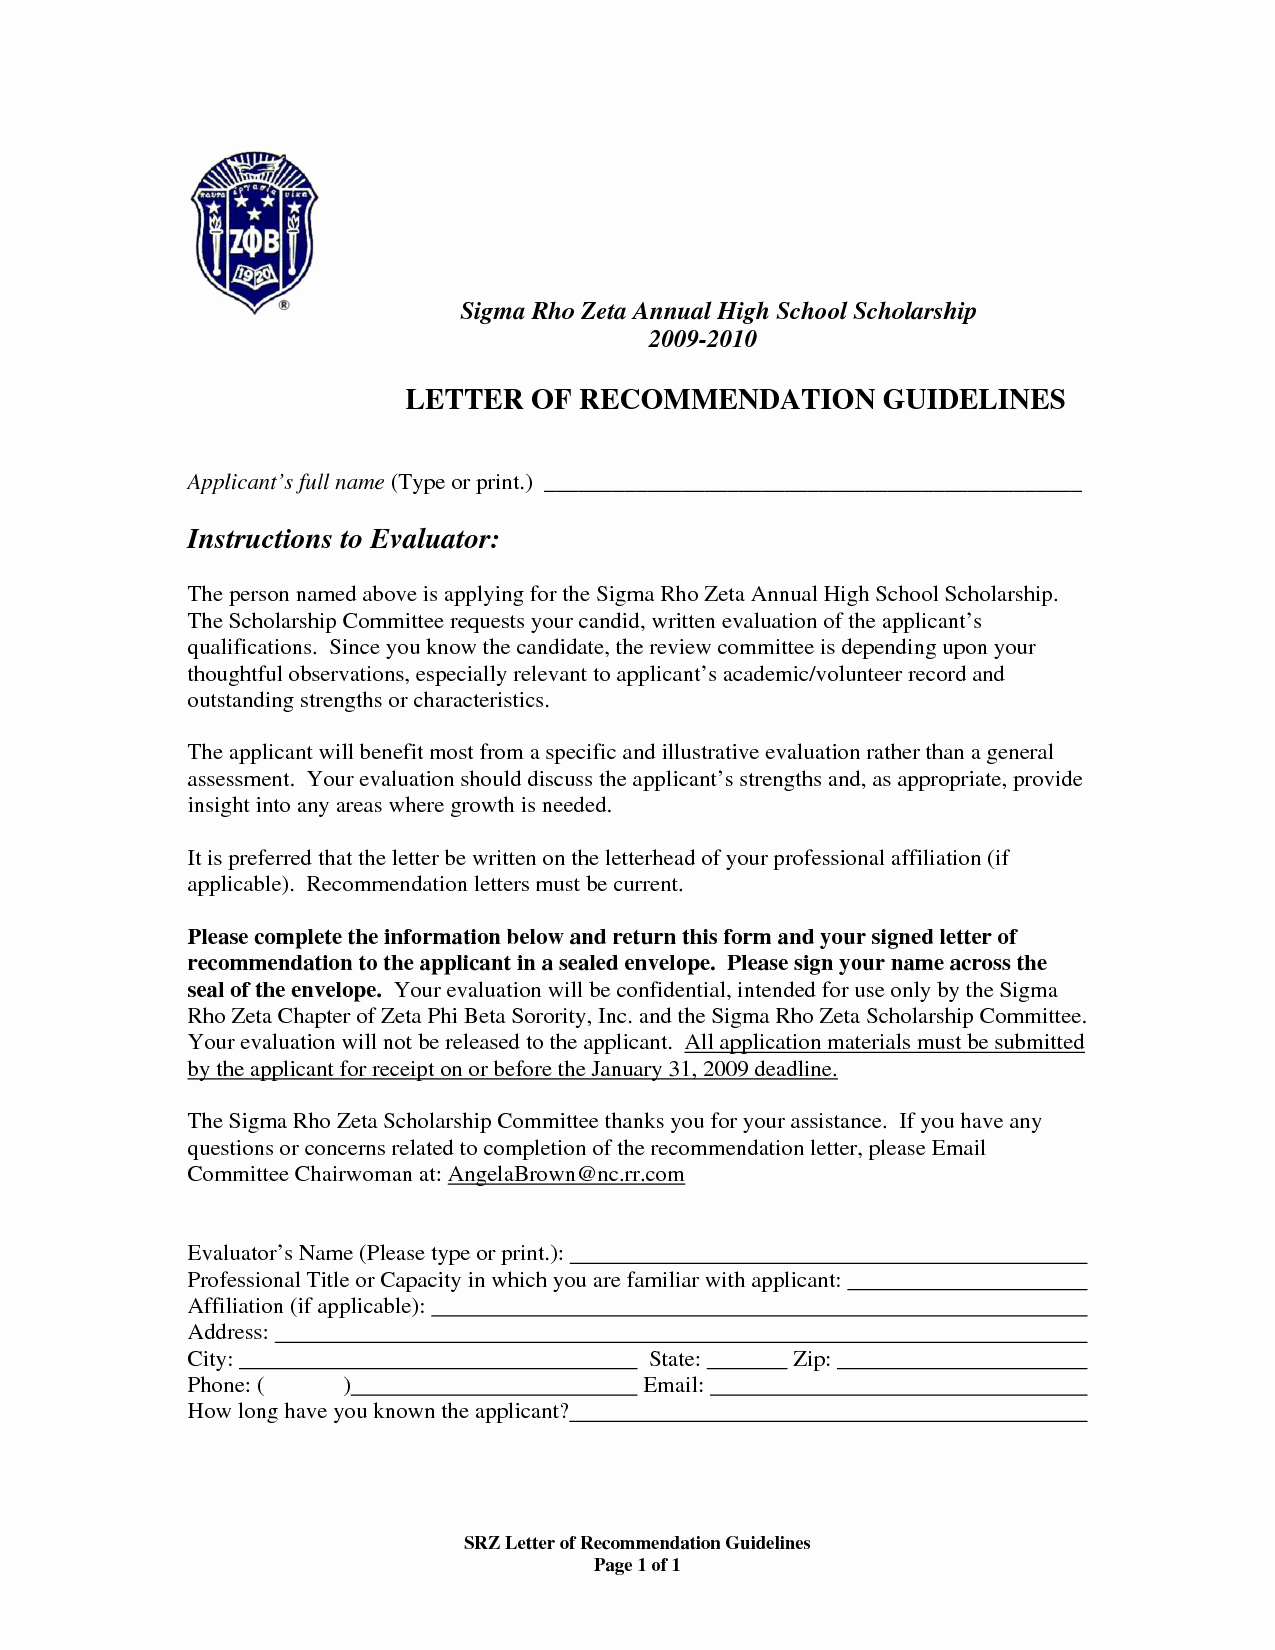 Format Of A Recomendation Letter Best Of Re Mendation Letter format